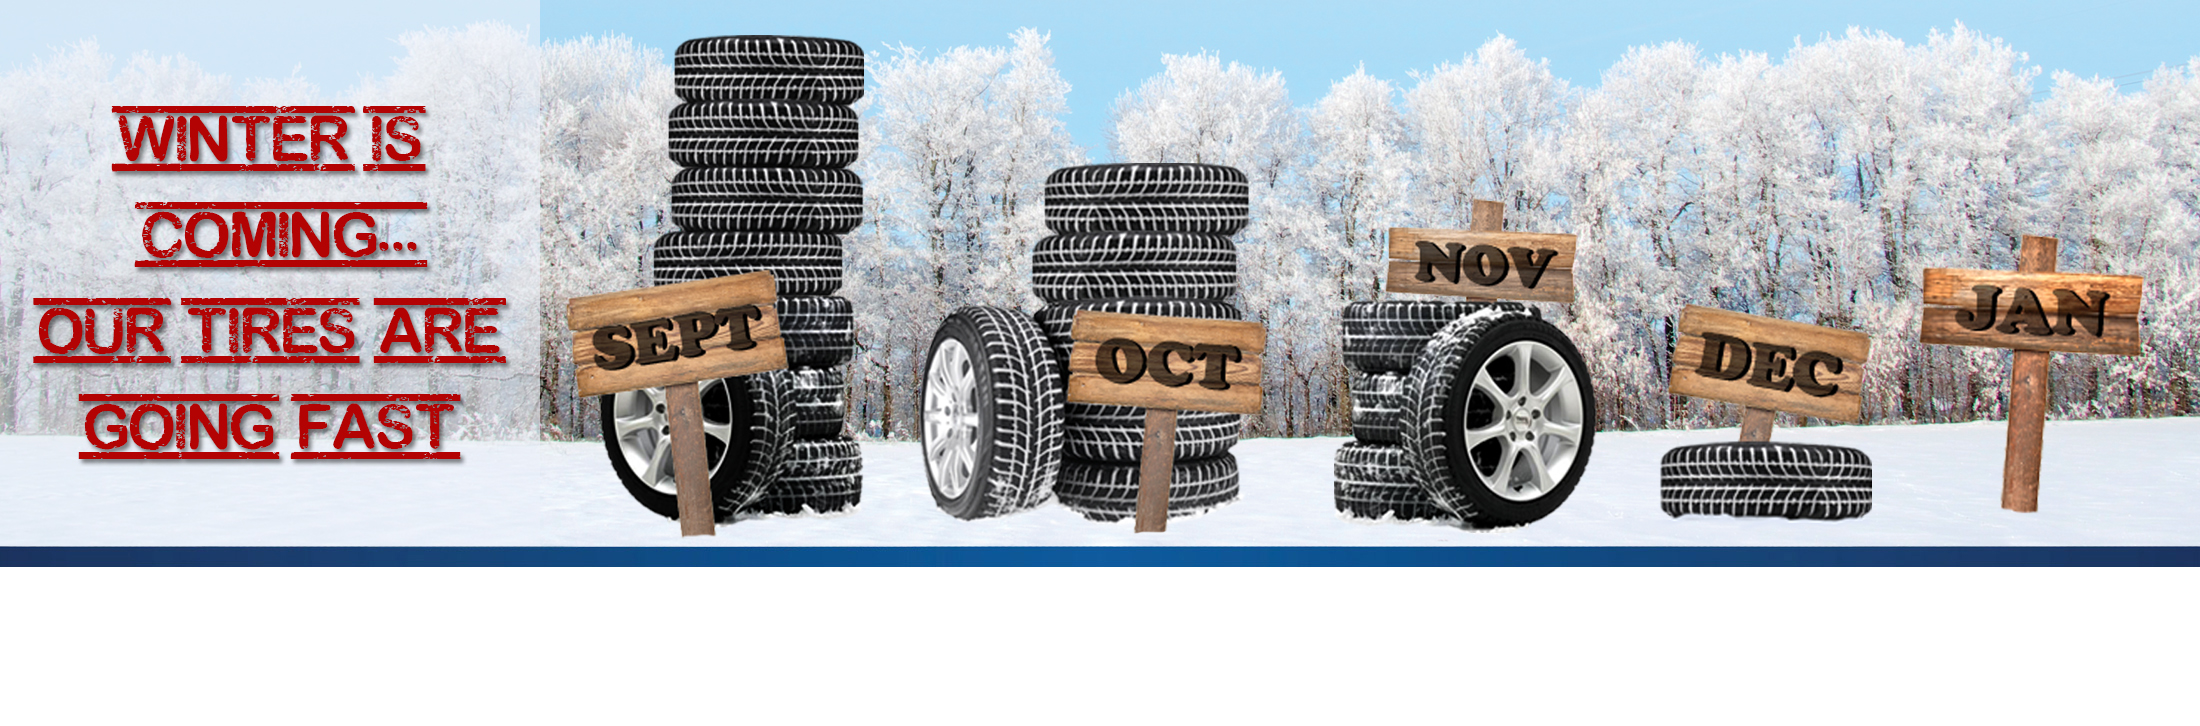 Winter is Coming Winter Tire Sale